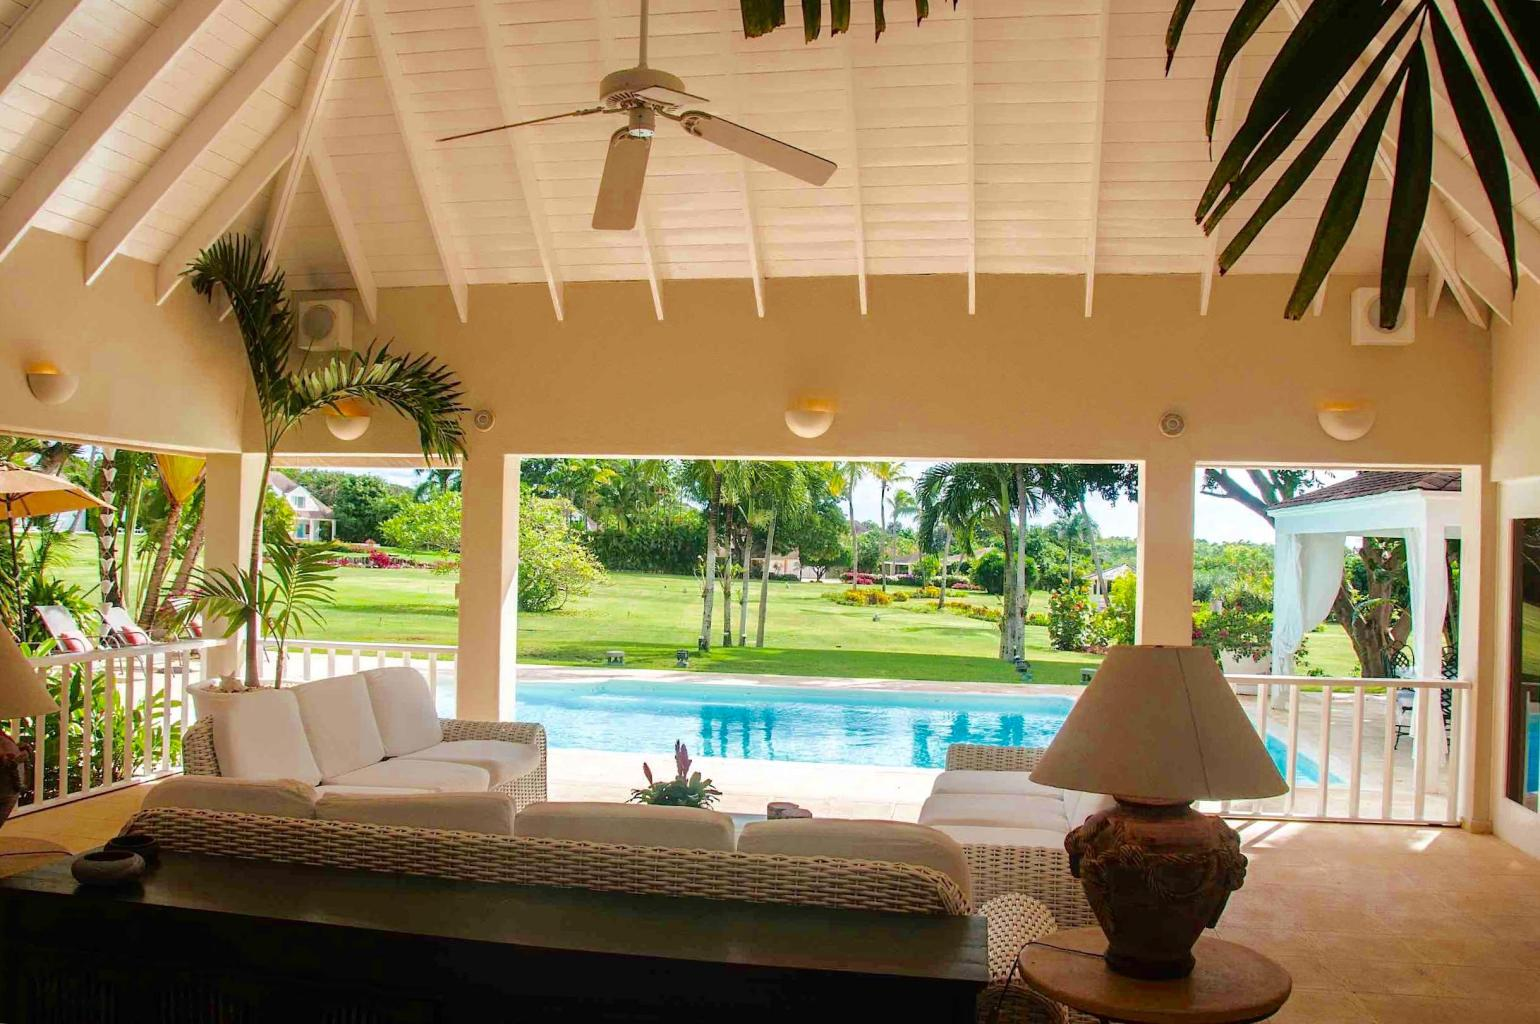 Additional photo for property listing at Jardin Minitas 8, Casa de Campo, La Romana, Dominican Republic La Romana, DOM